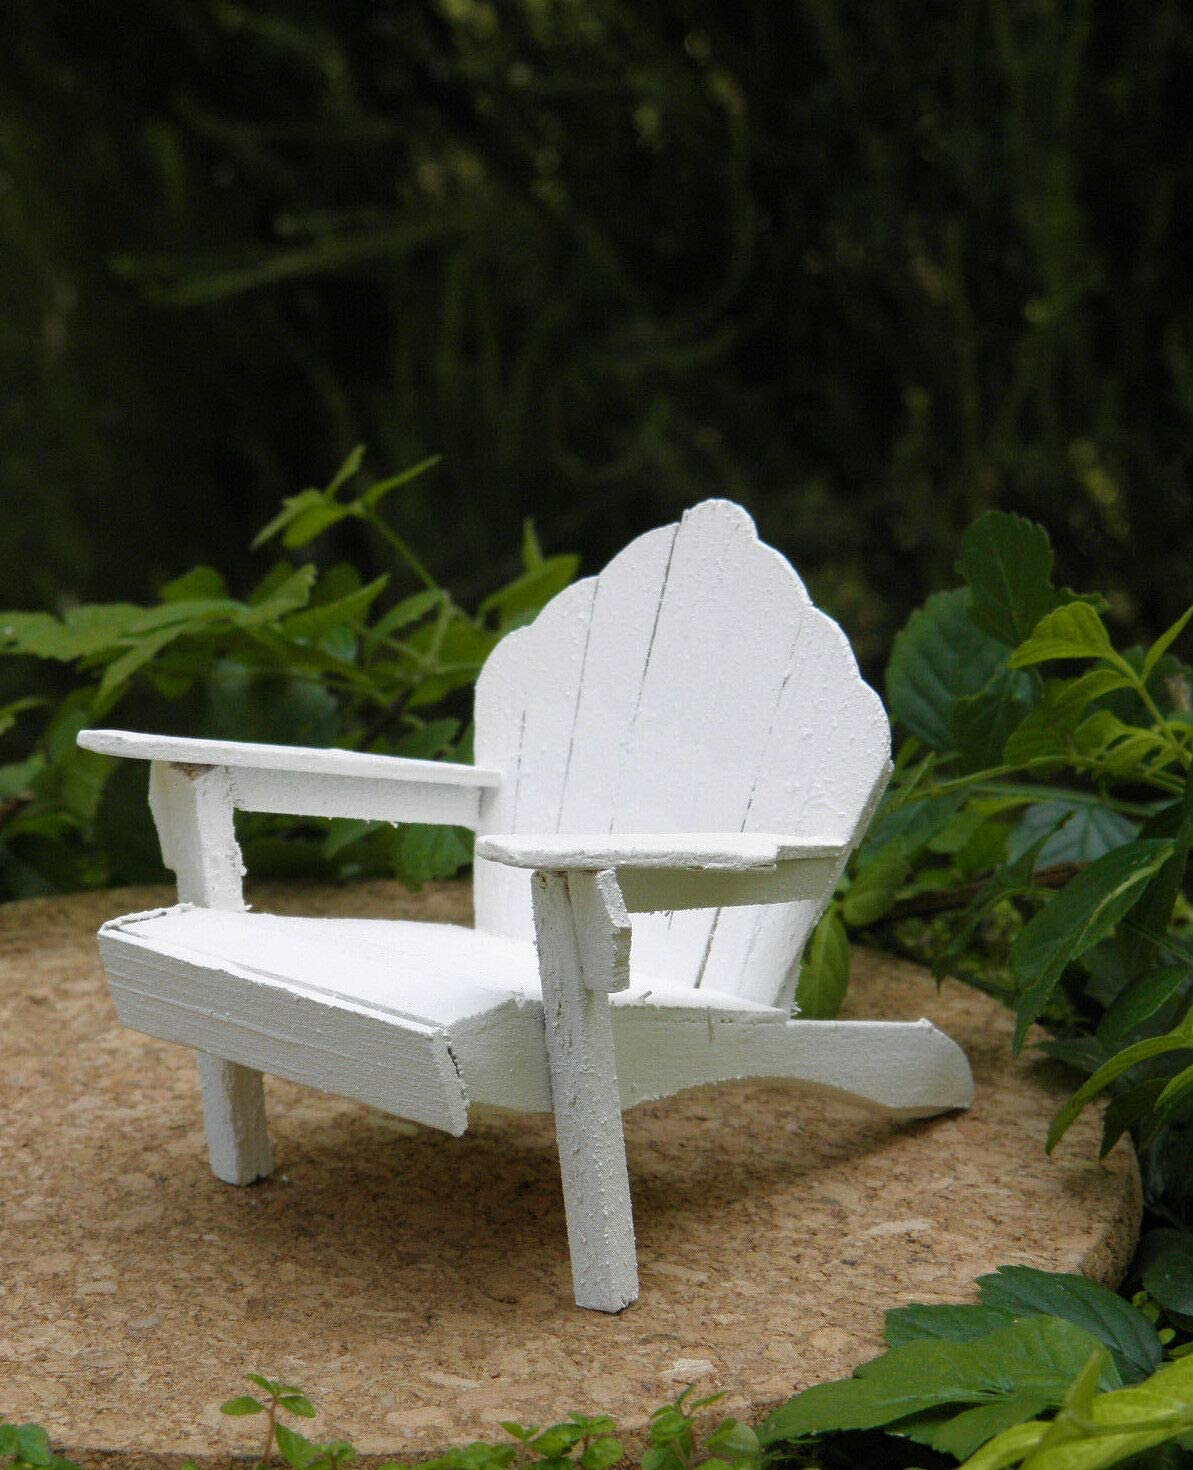 Miniature Attention brand Over item handling ☆ Dollhouse Fairy Garden Furniture Wood White Rustic A ~